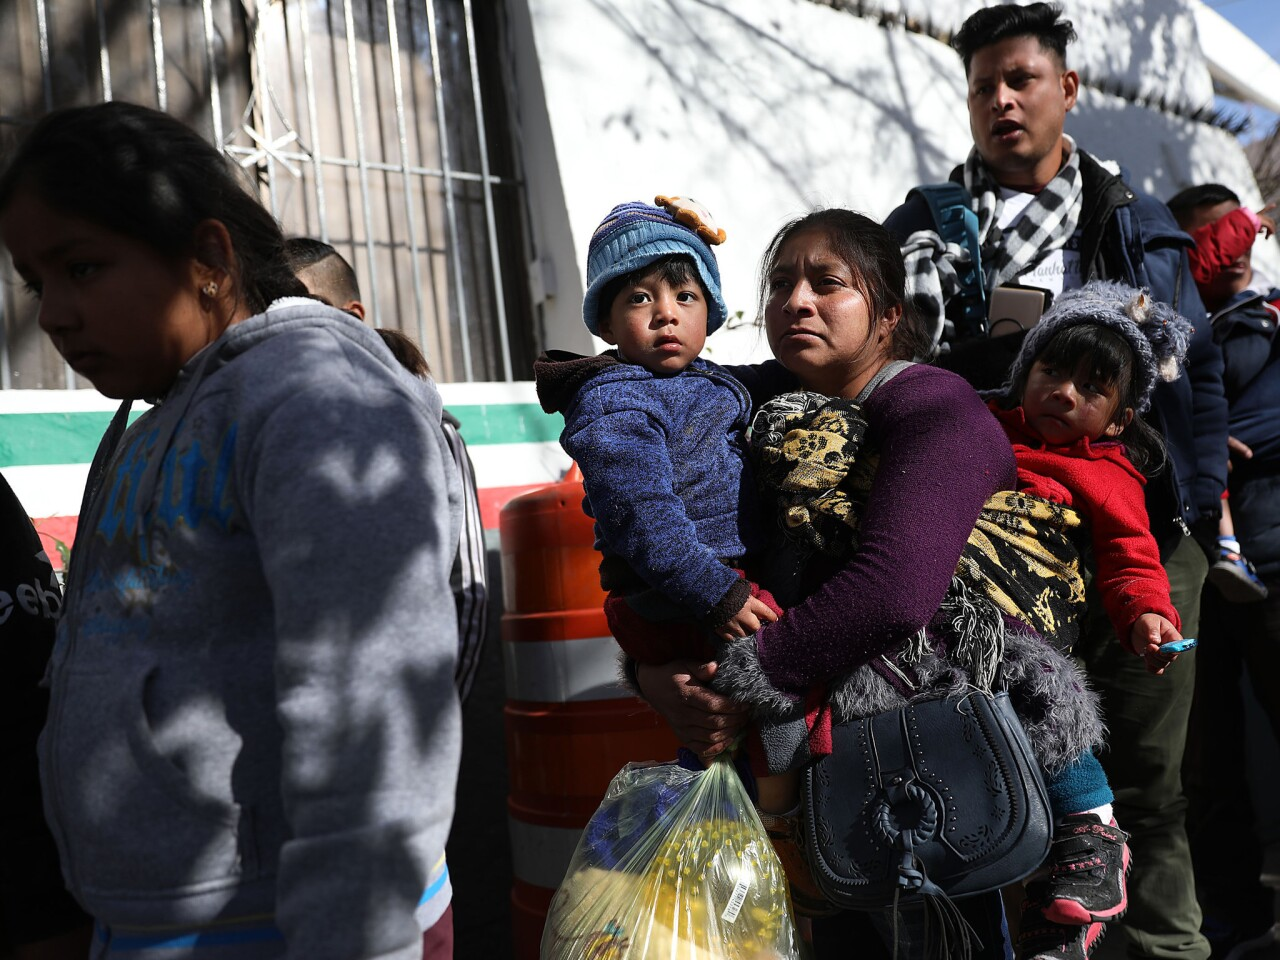 U.S. to require asylum seekers to remain in Mexico